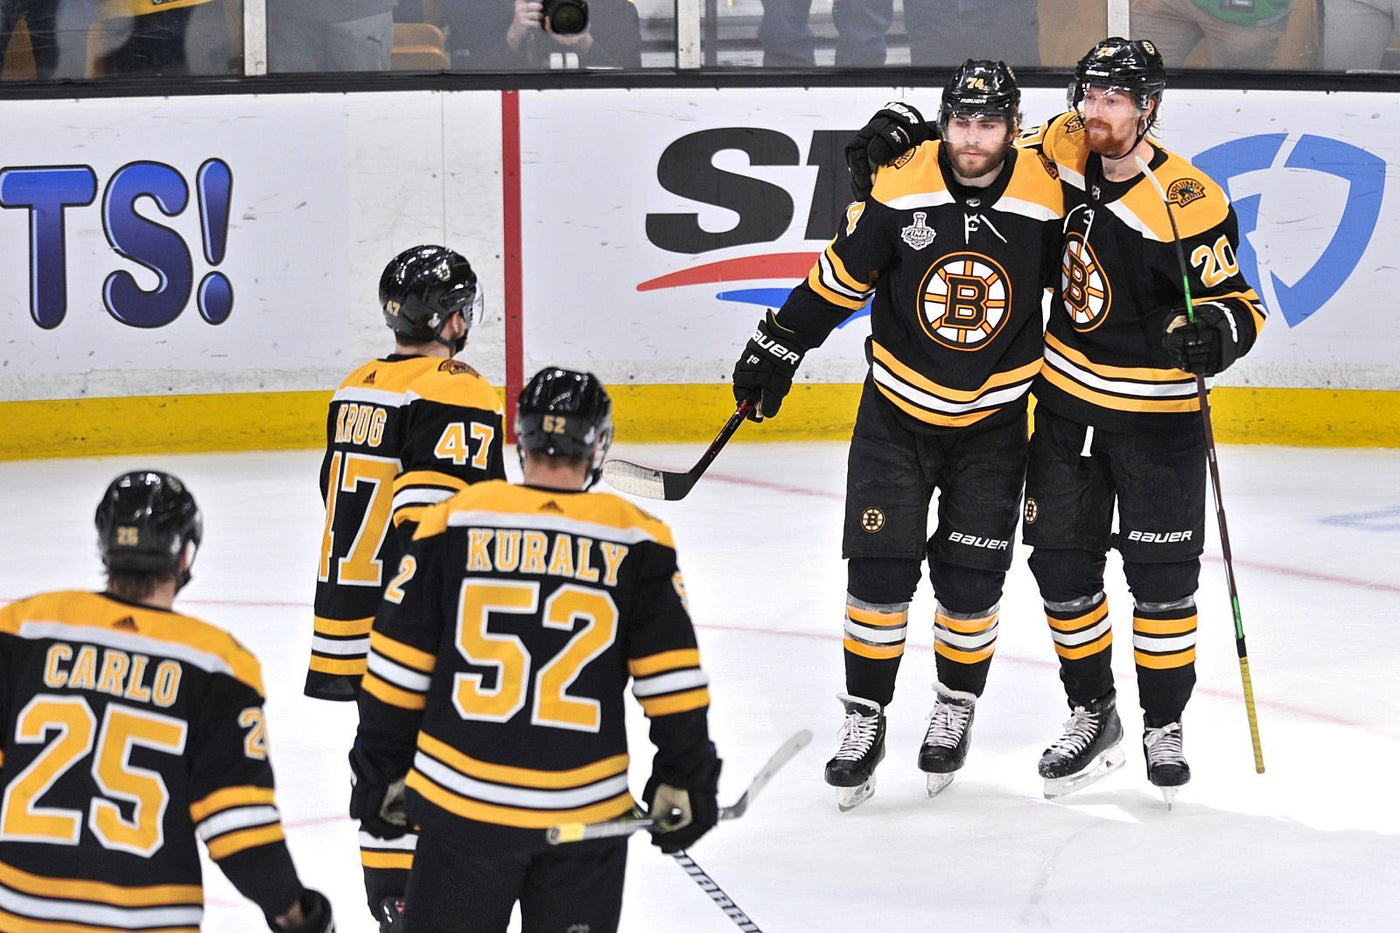 The Athletic tries RIPPING the Bruins